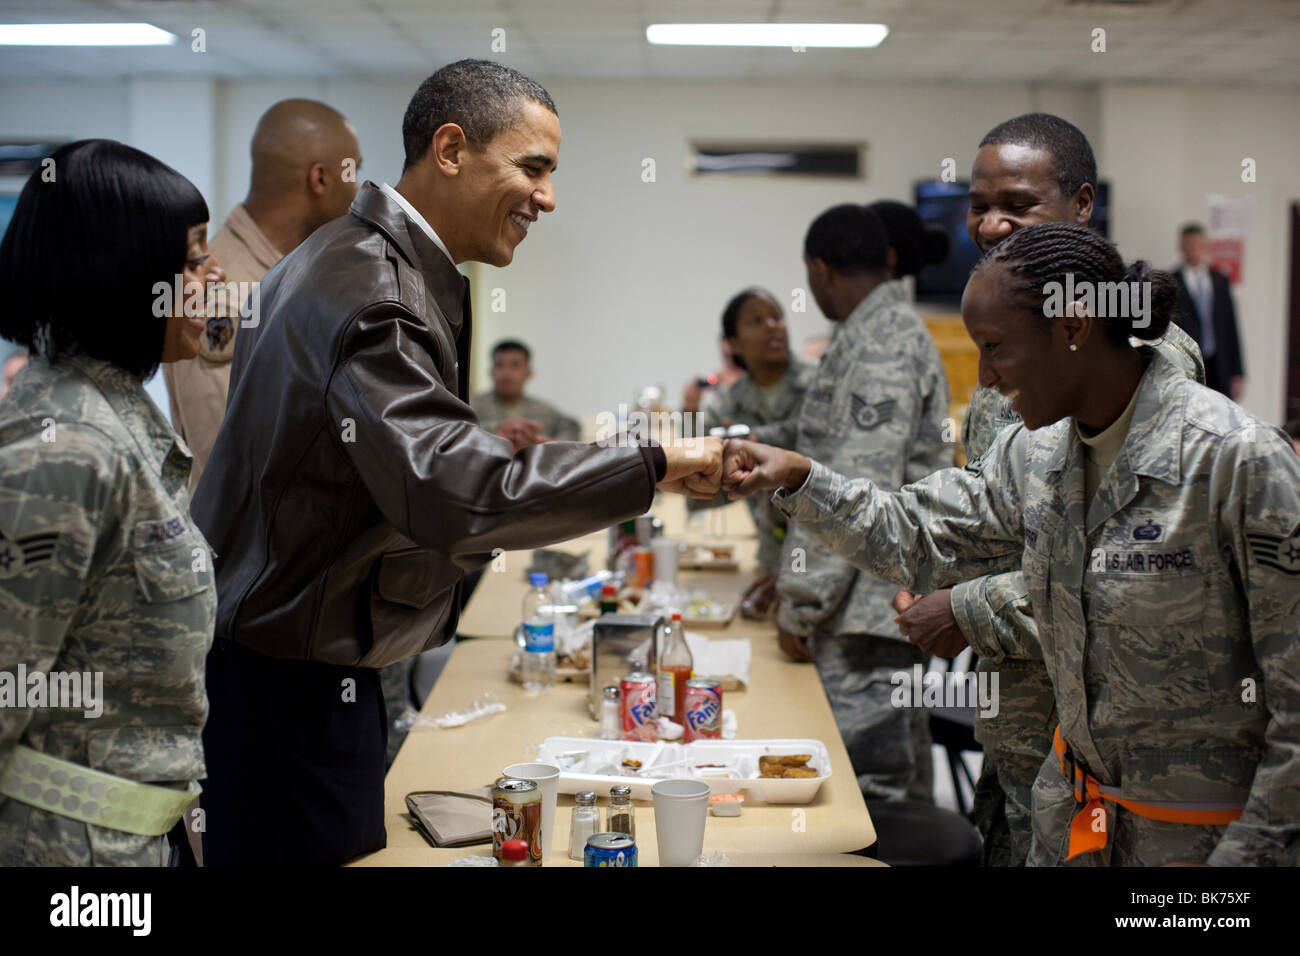 President Barack Obama greets U.S. troops at a mess hall at Bagram Air Field in Afghanistan, March 28, 2010. - Stock Image